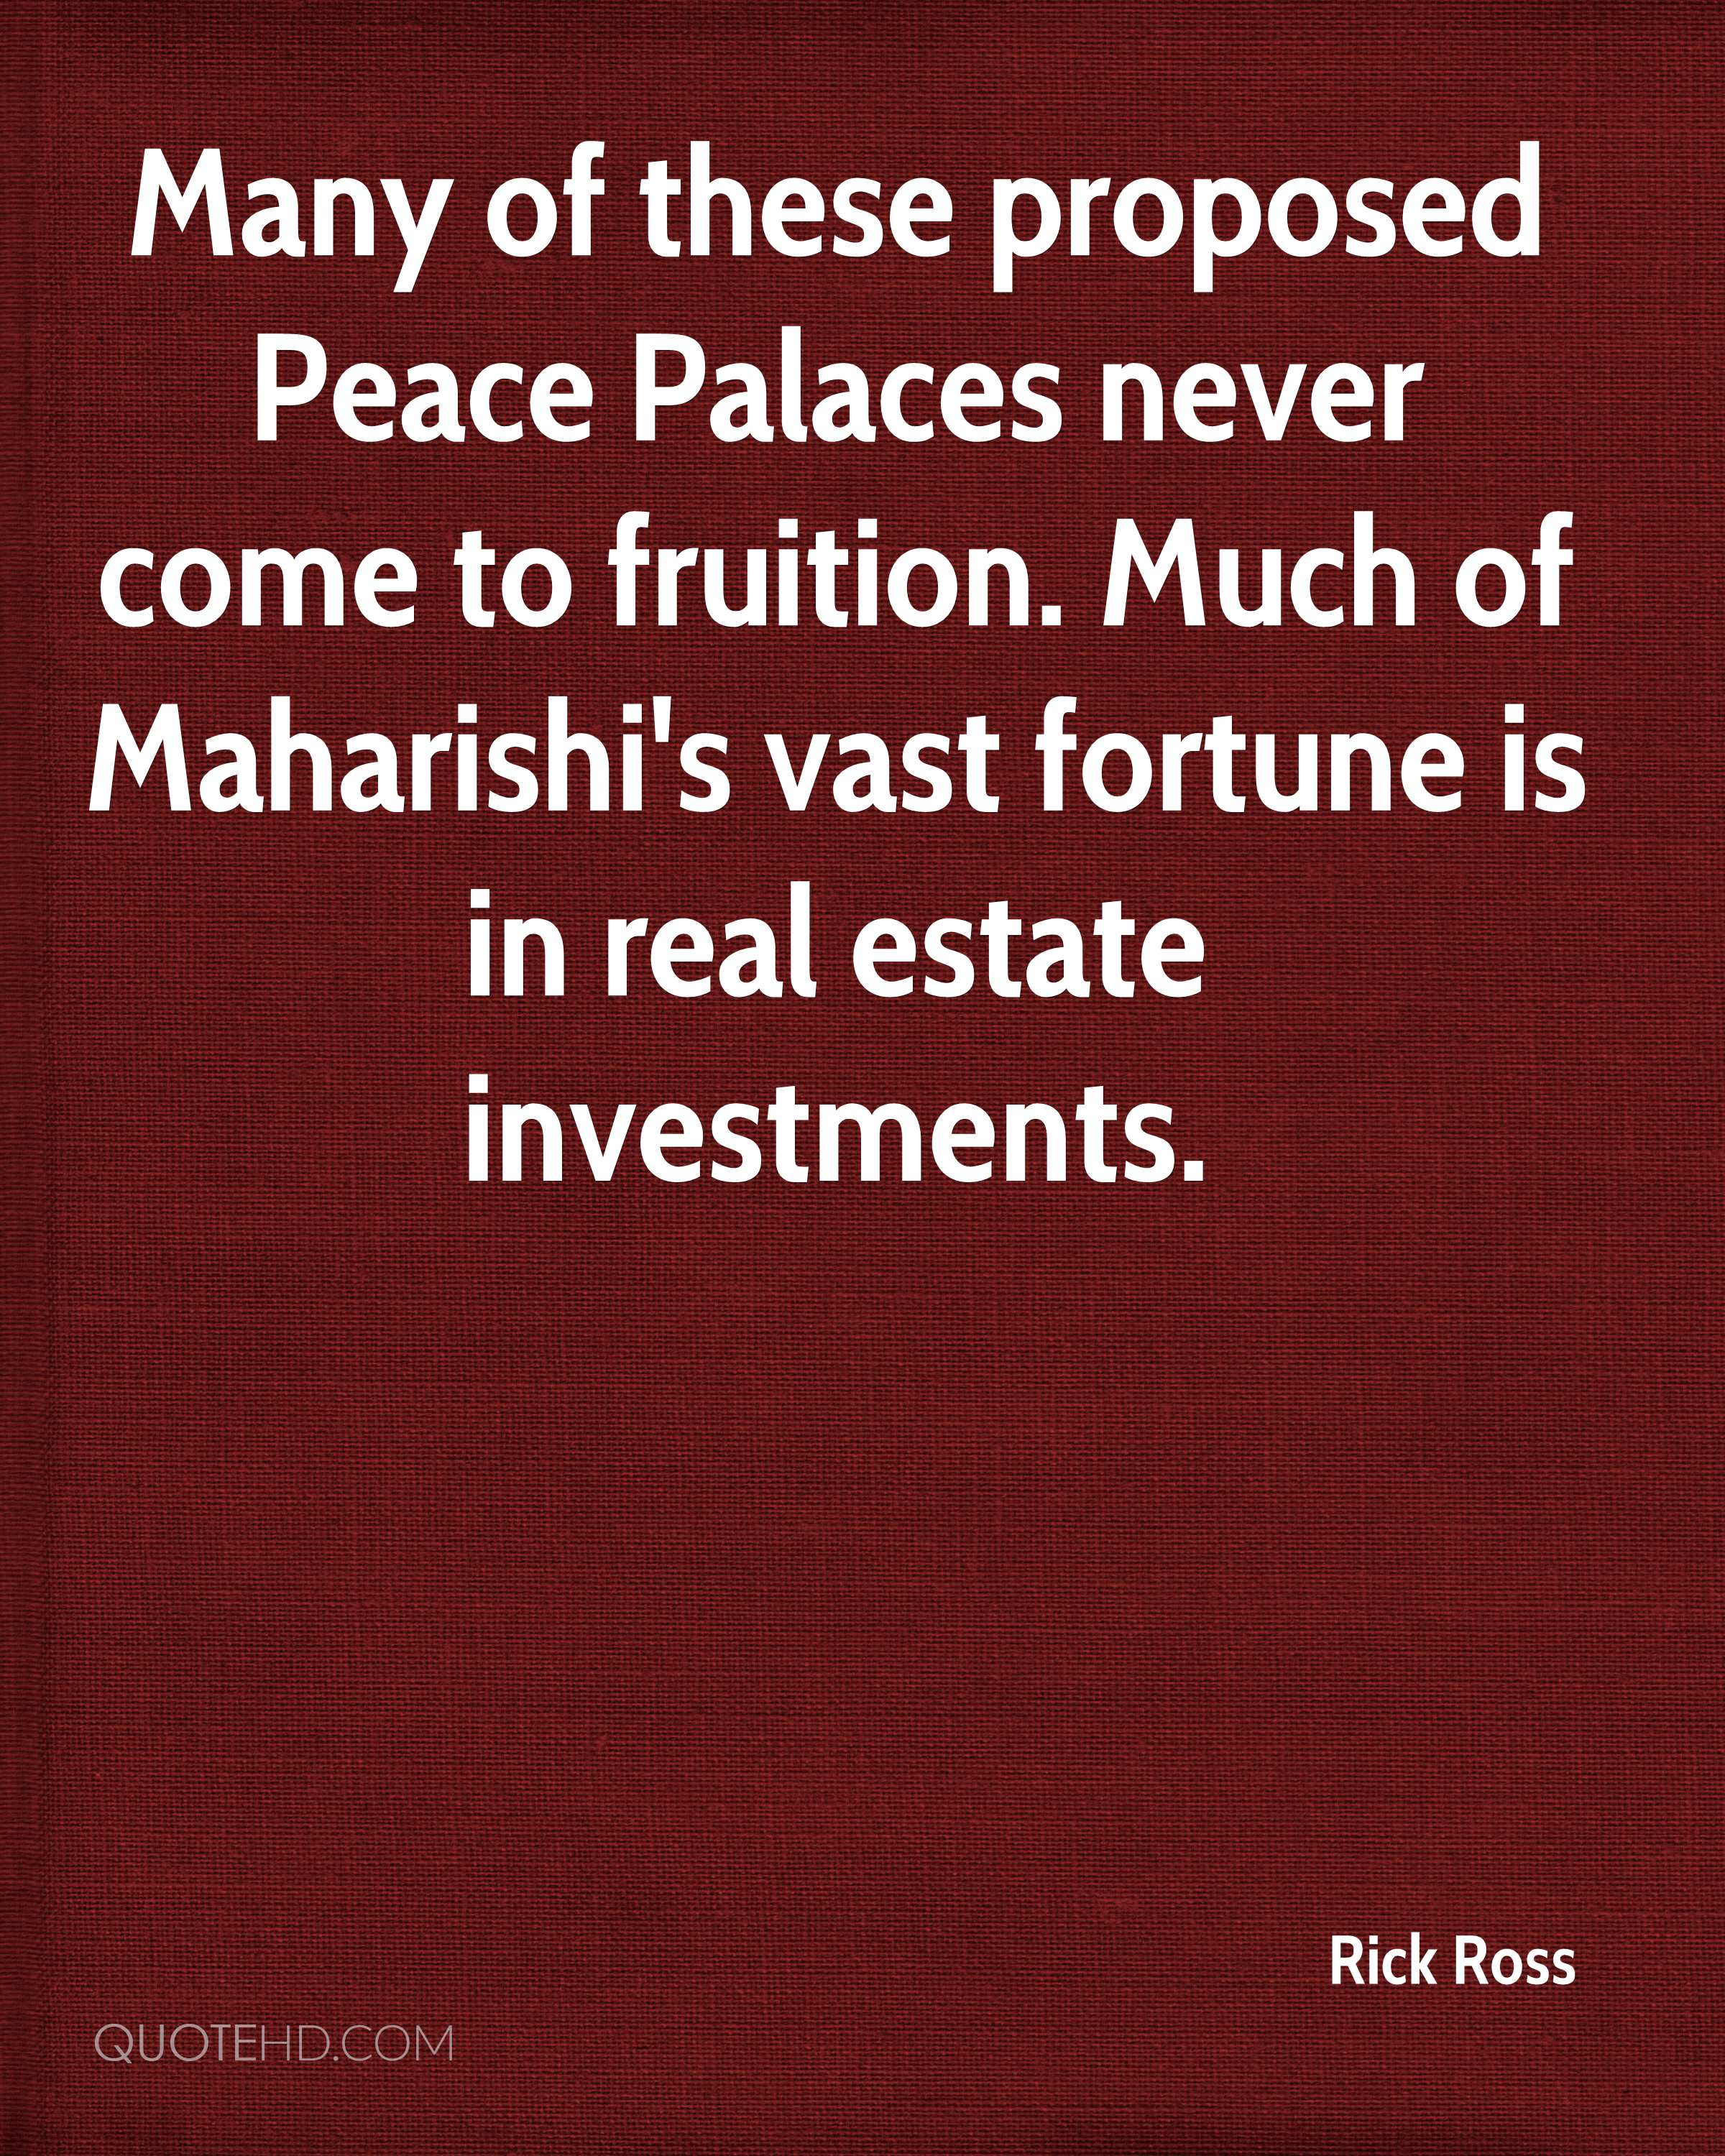 Many of these proposed Peace Palaces never come to fruition. Much of Maharishi's vast fortune is in real estate investments.